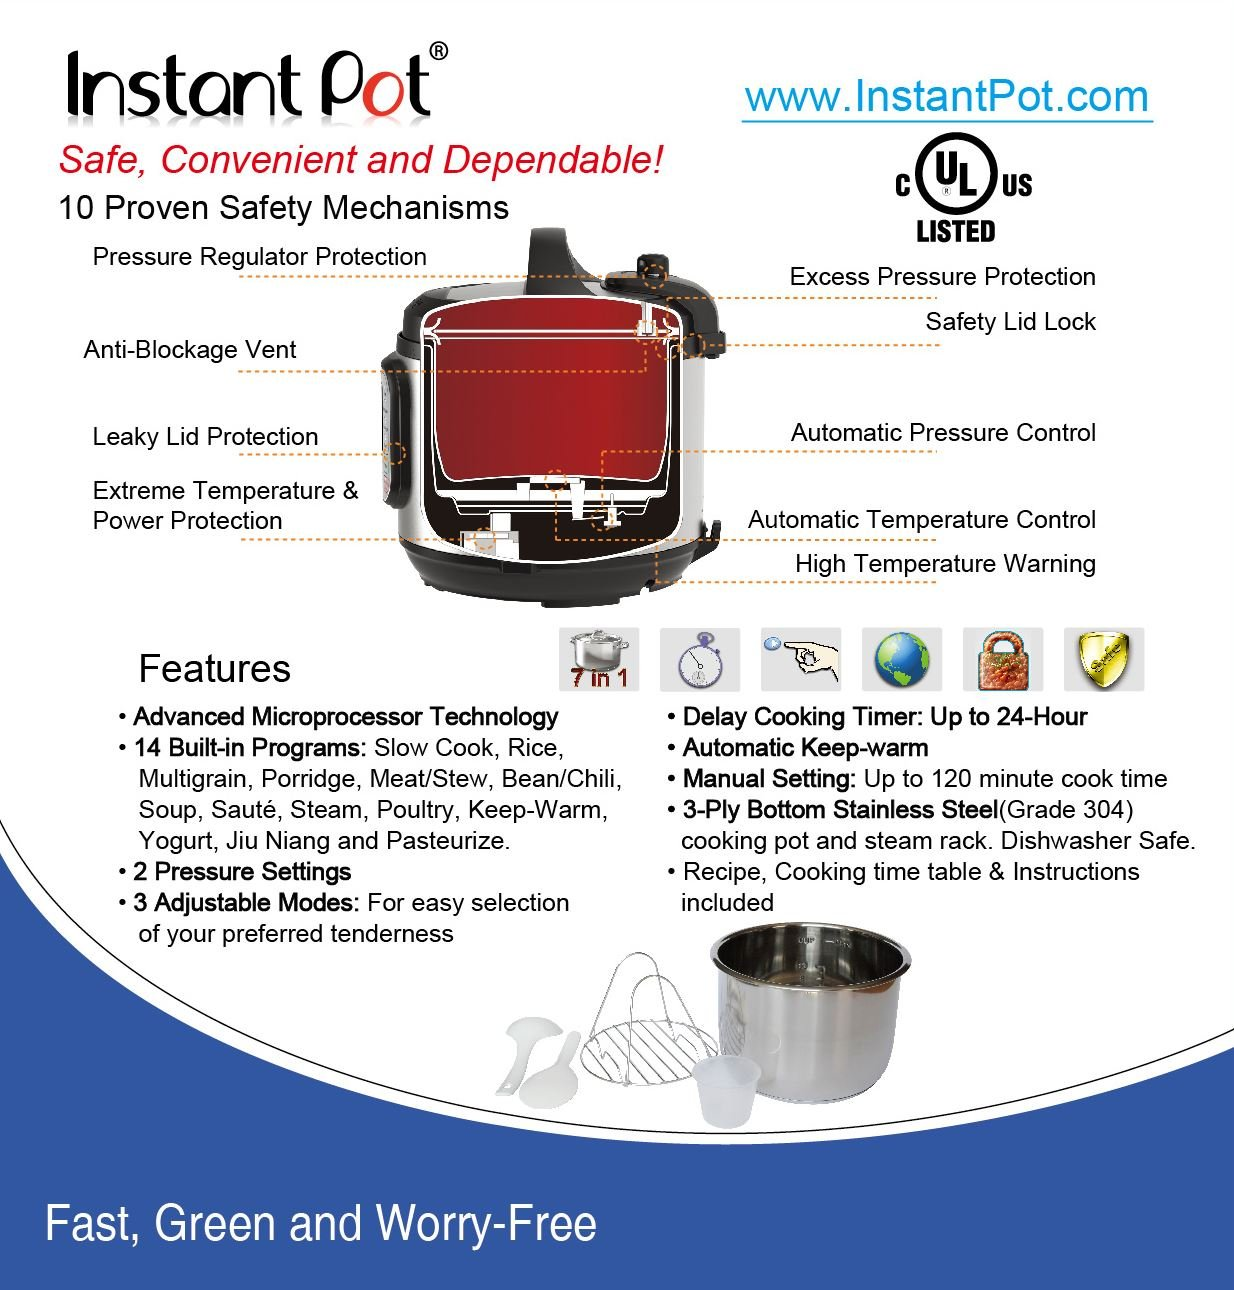 Instant Pot DUO50 7-in-1 Multi-Use Programmable Pressure Cooker, 5 Quart/900W by Instant Pot (Image #7)